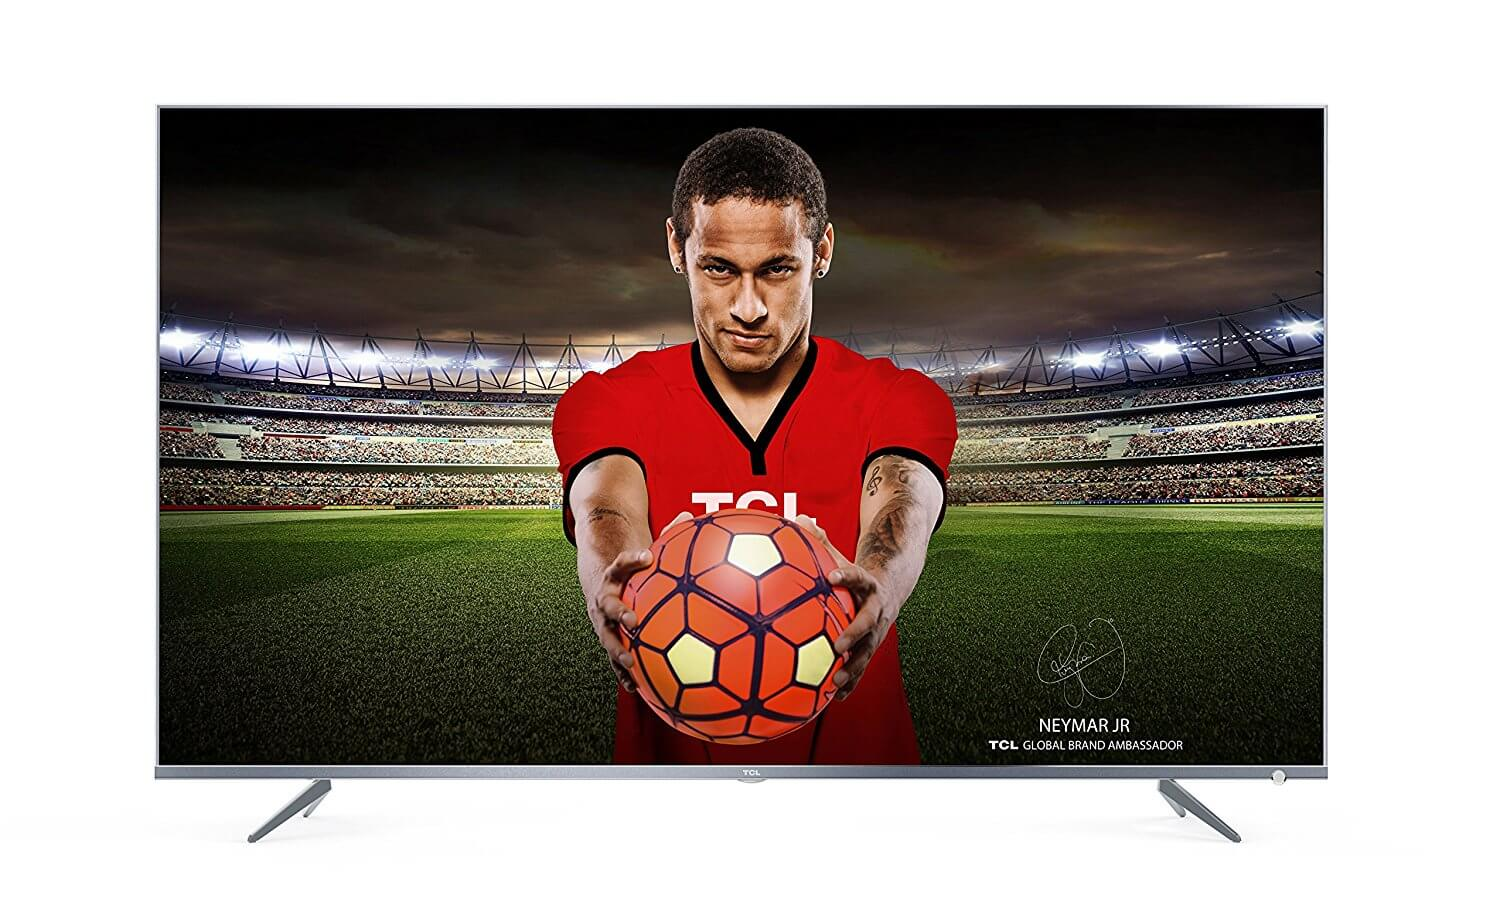 TCL 43DP648 43-Inch 4k Ultra HD TV with Freeview Play 2018 Model Best 4K Ultra HD Smart LED TV Under £400